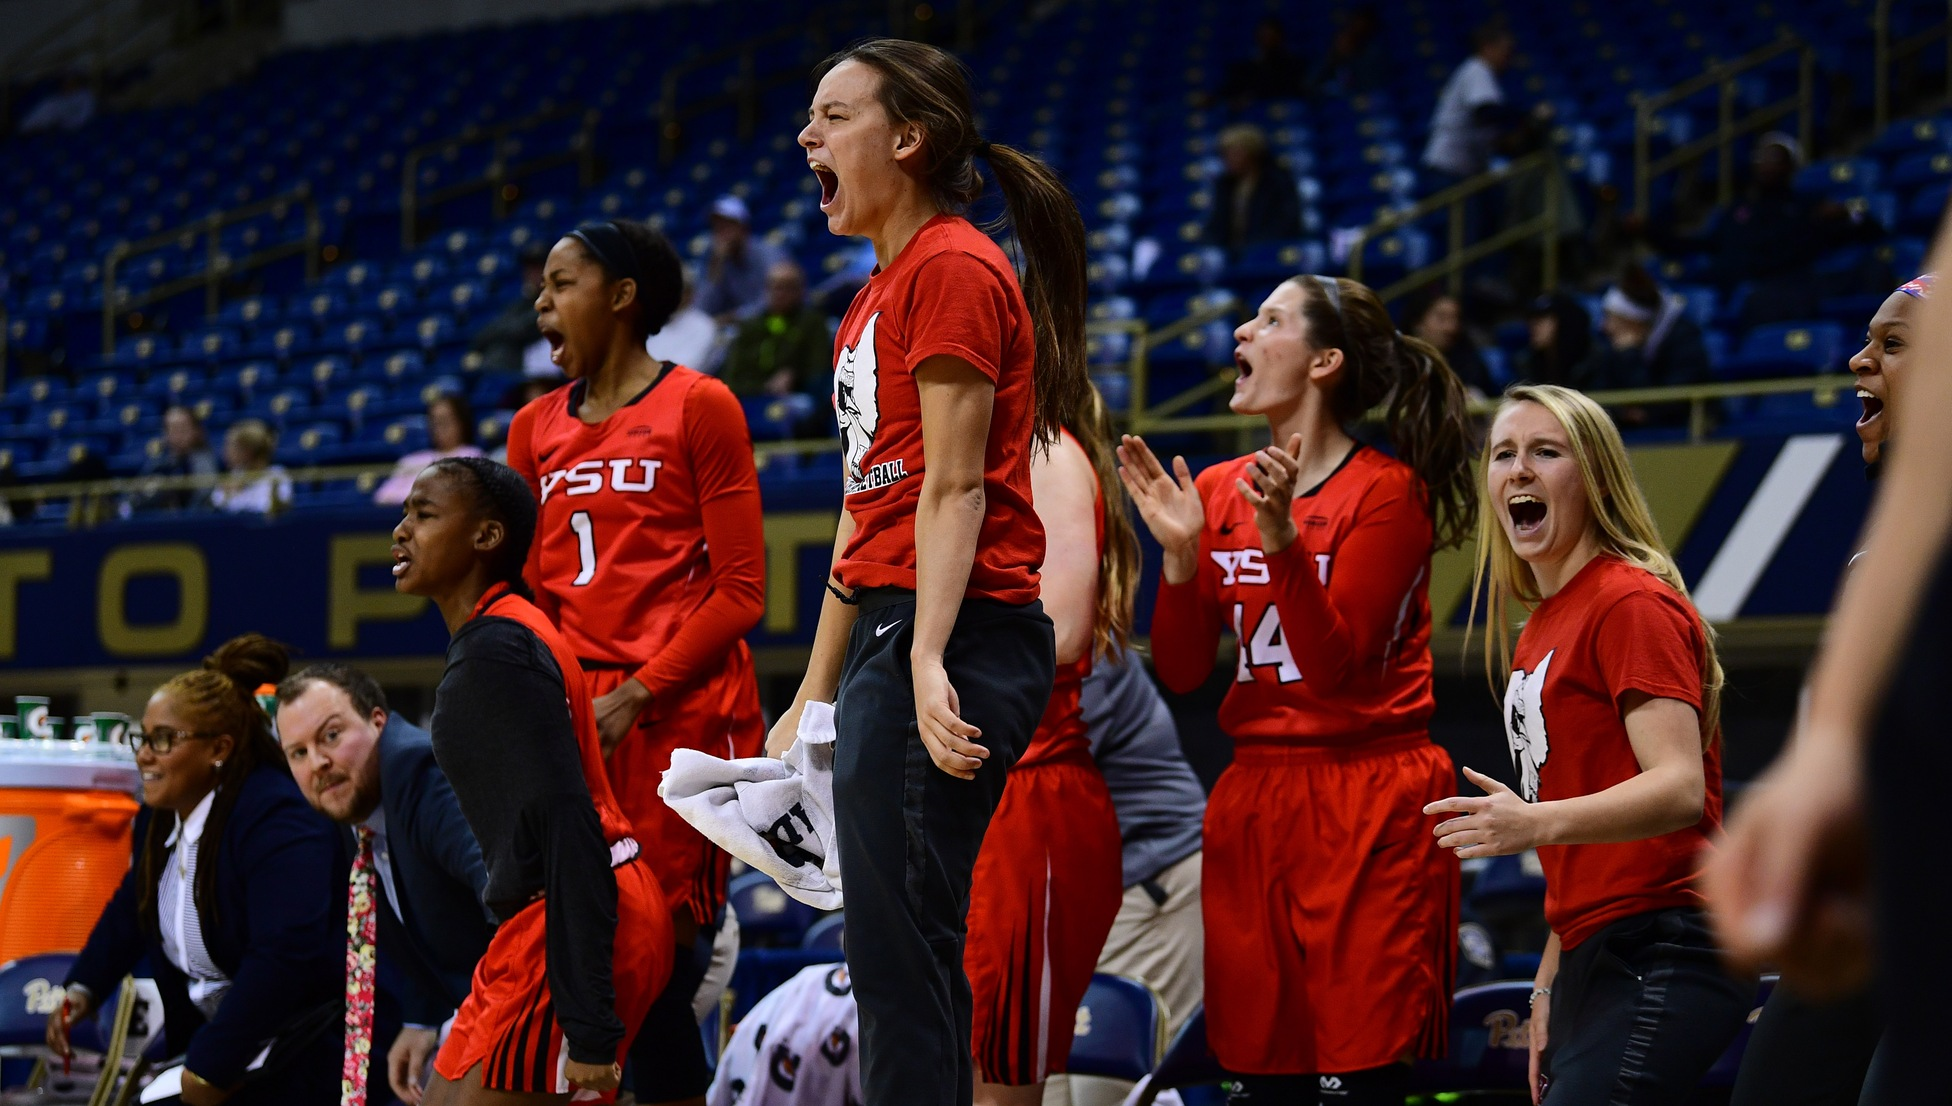 YSU Women's Basketball (Photo by David Dermer)